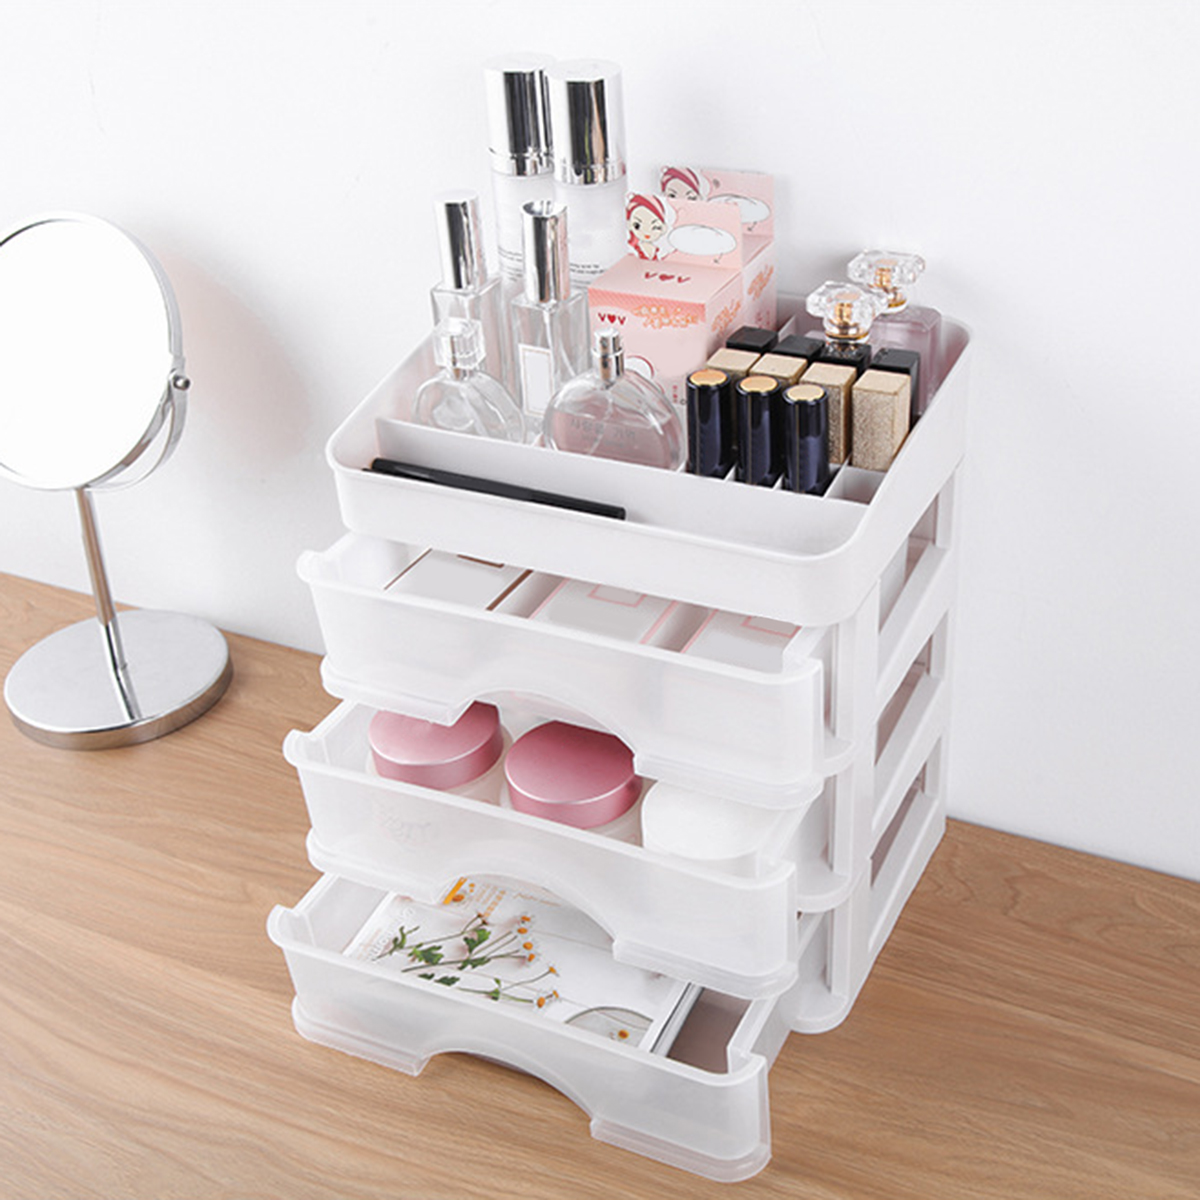 Plastic Cosmetic Drawer Makeup Organizer Storage Box Container Holder Desktop with Drawer